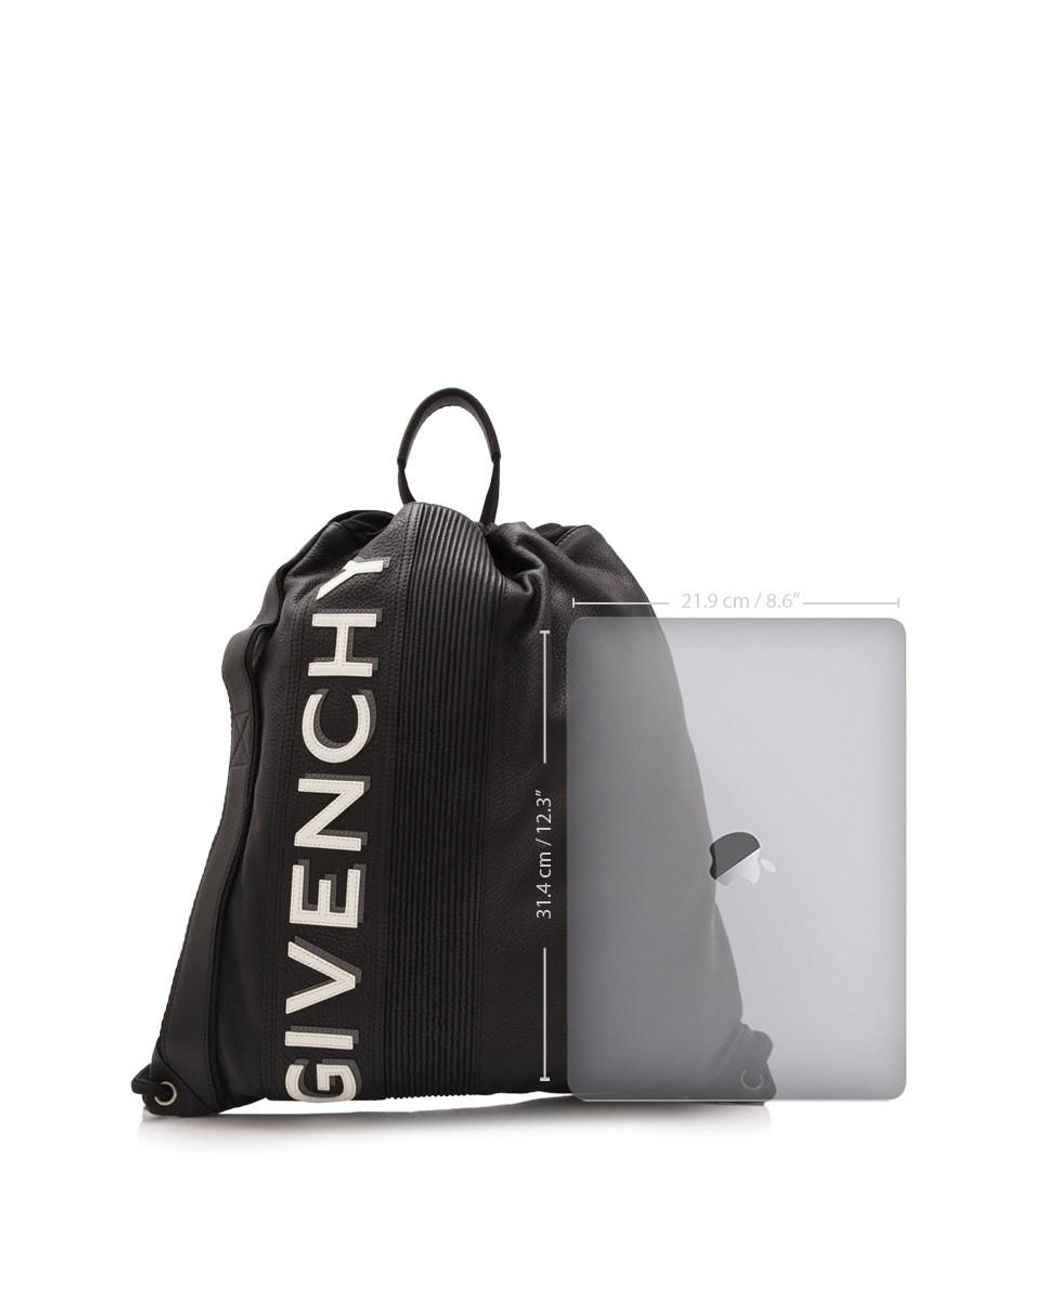 3592d18f82d379 Givenchy Mc3 Drawstring Backpack in Black for Men - Save 23% - Lyst